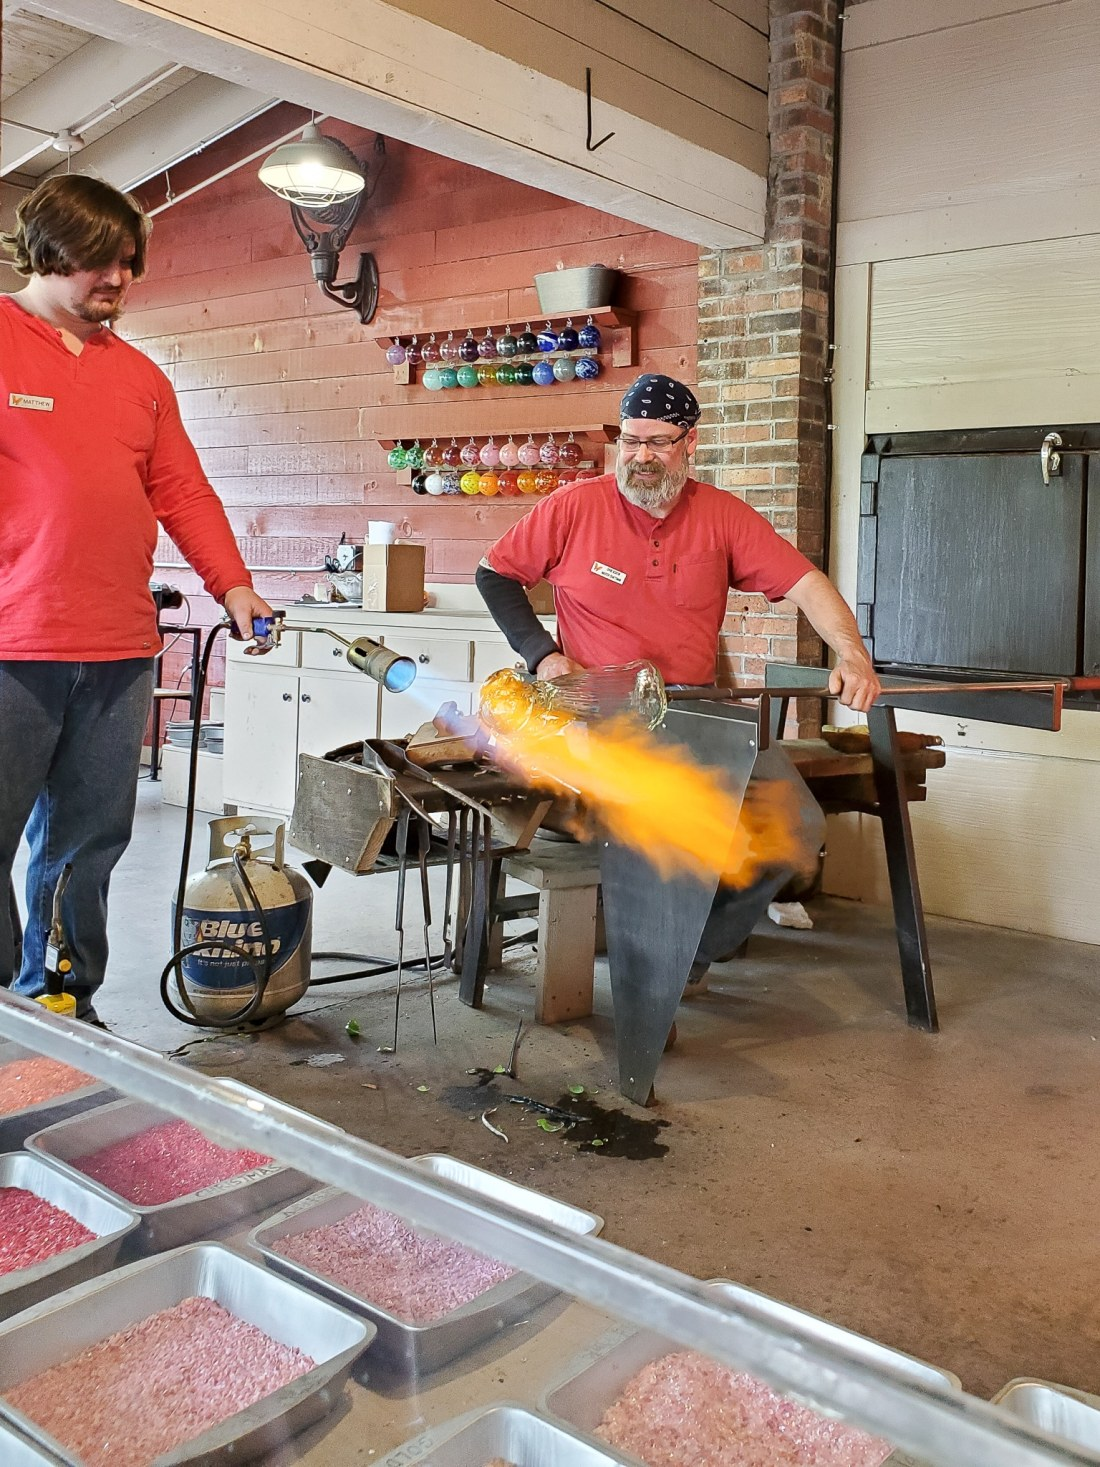 Live Glass Blowing Dollywood. My family spent the day playing and eating at the Dollywood theme park, and we are happy to report we had a blast! Read all about our trip and learn why Dollwood is a must visit destination while you are in Pigeon Forge, TN.